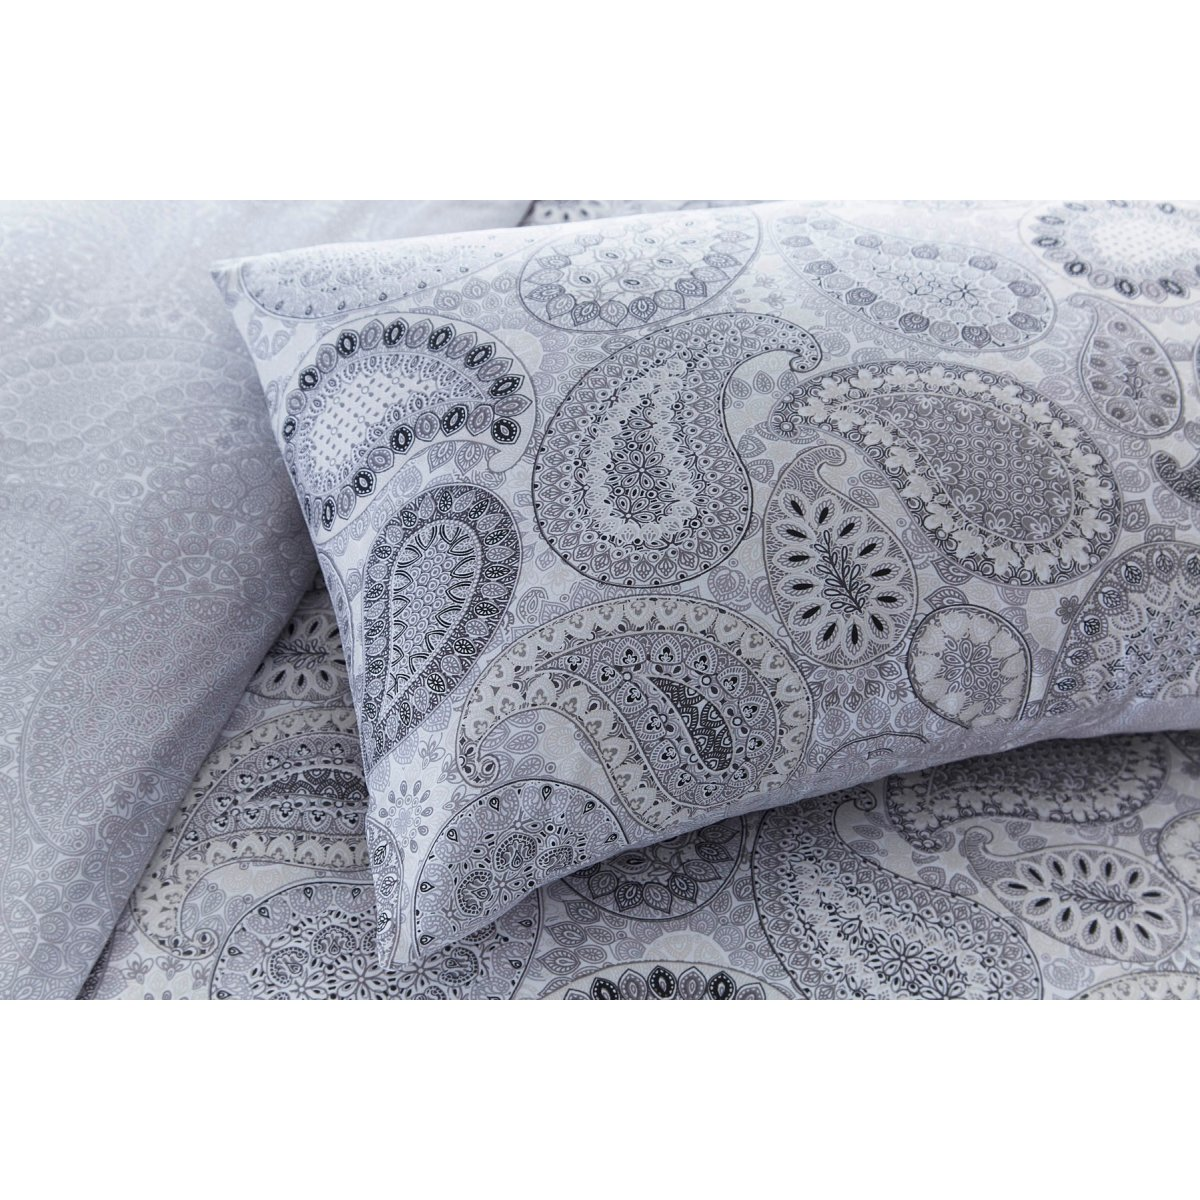 Paisley Grey Bedding - Reversible Duvet Cover and Pillowcase Set